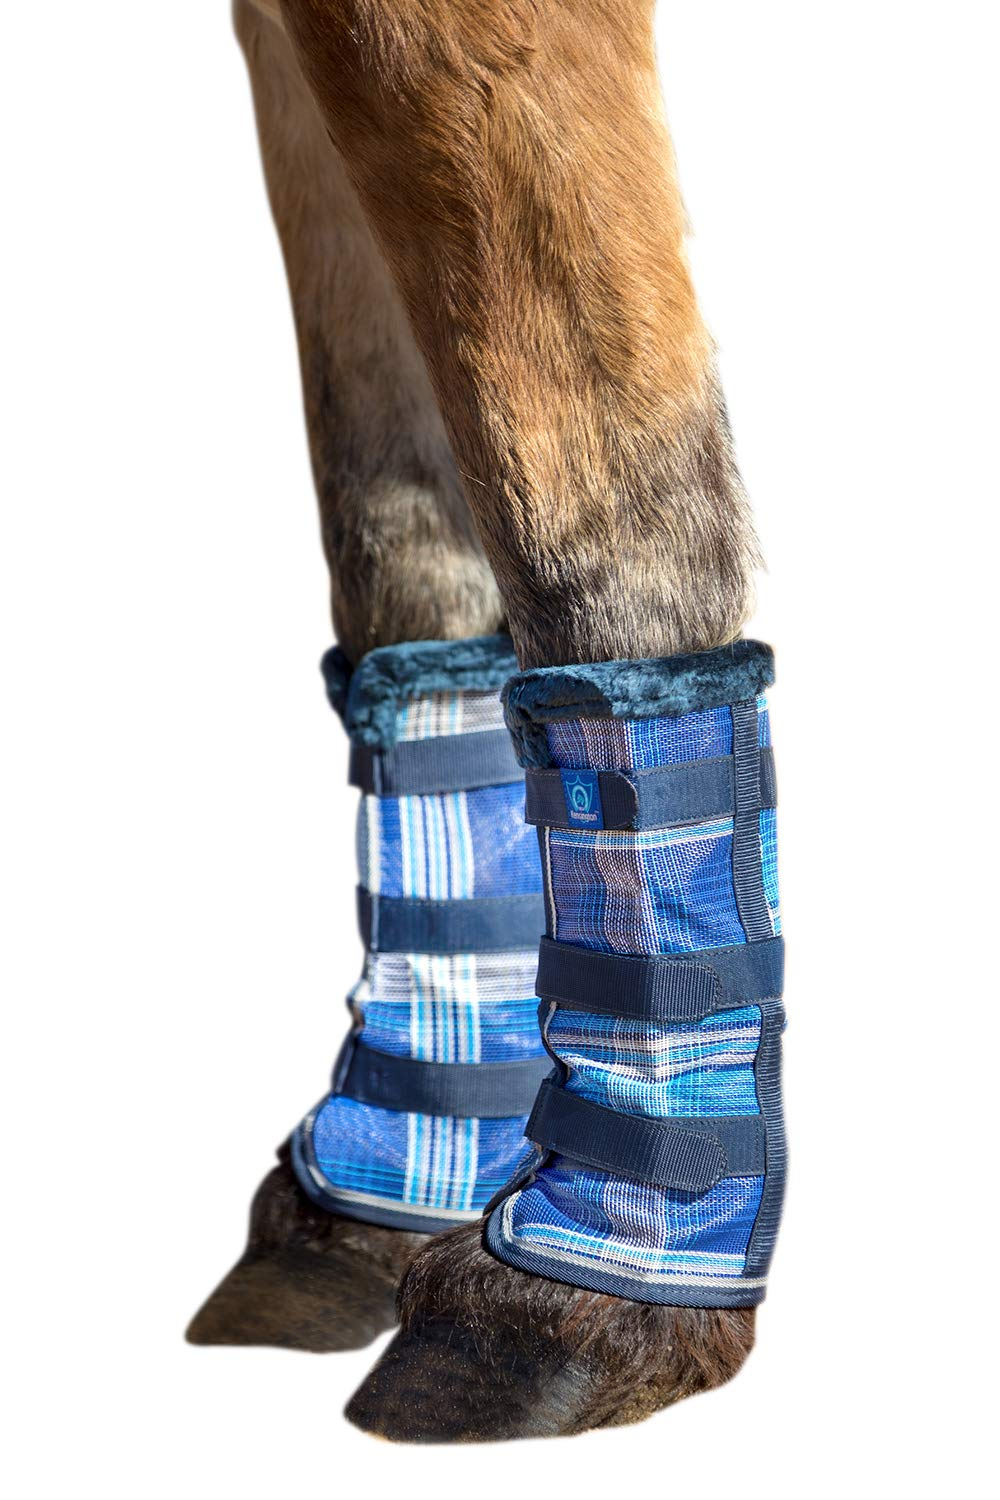 Kensington Draft Fly Boots with Comfortable Fleece Trim - Kentucky Blue - Stay-Up Technology - Protection from Insect Bites and UV Rays - Set of 2 by Kensington Protective Products